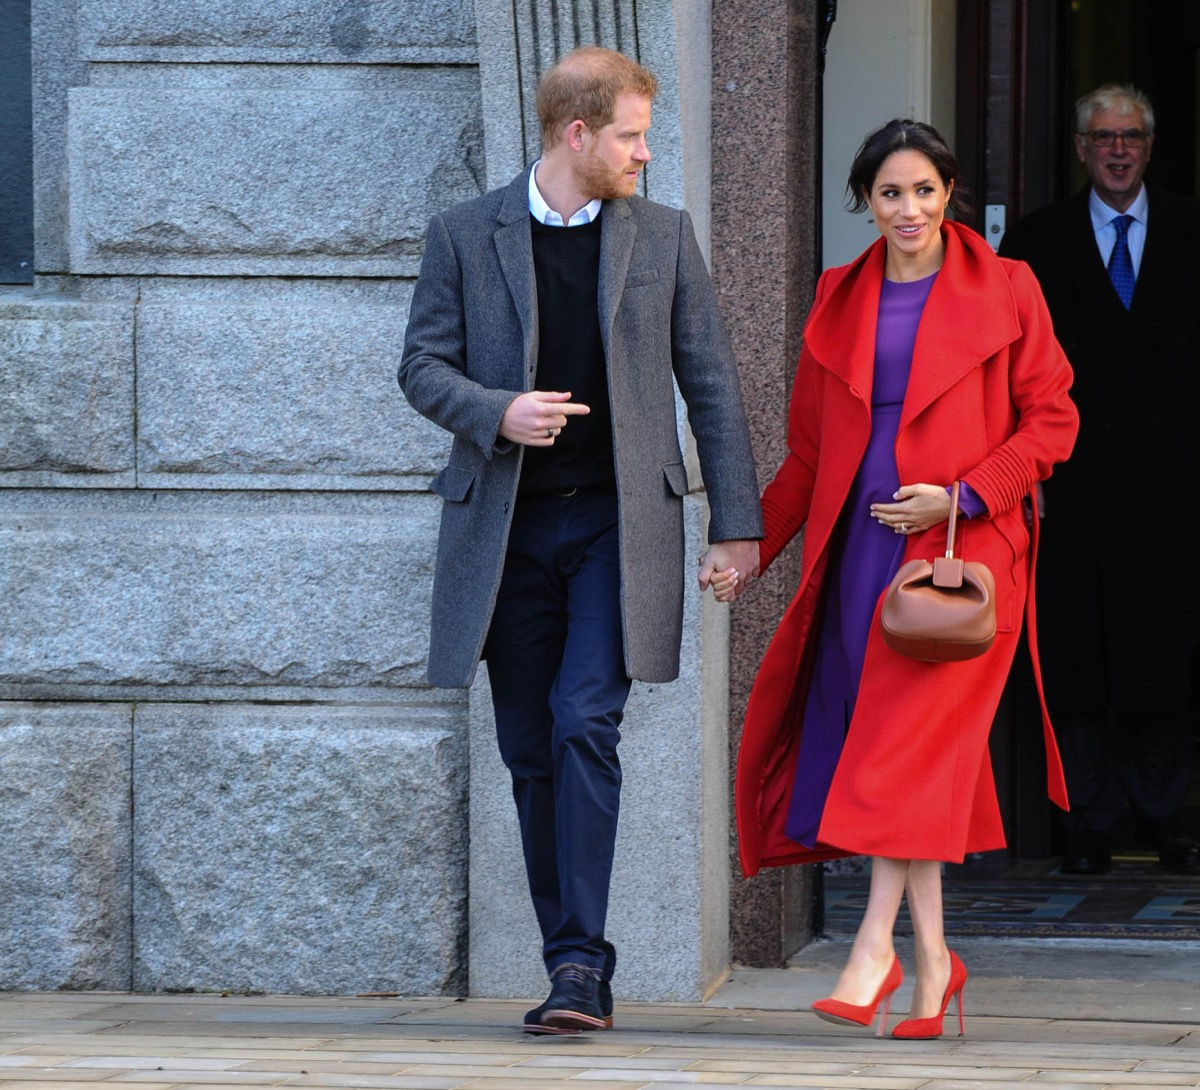 prince harry looking concerned while holding hands with meghan markle